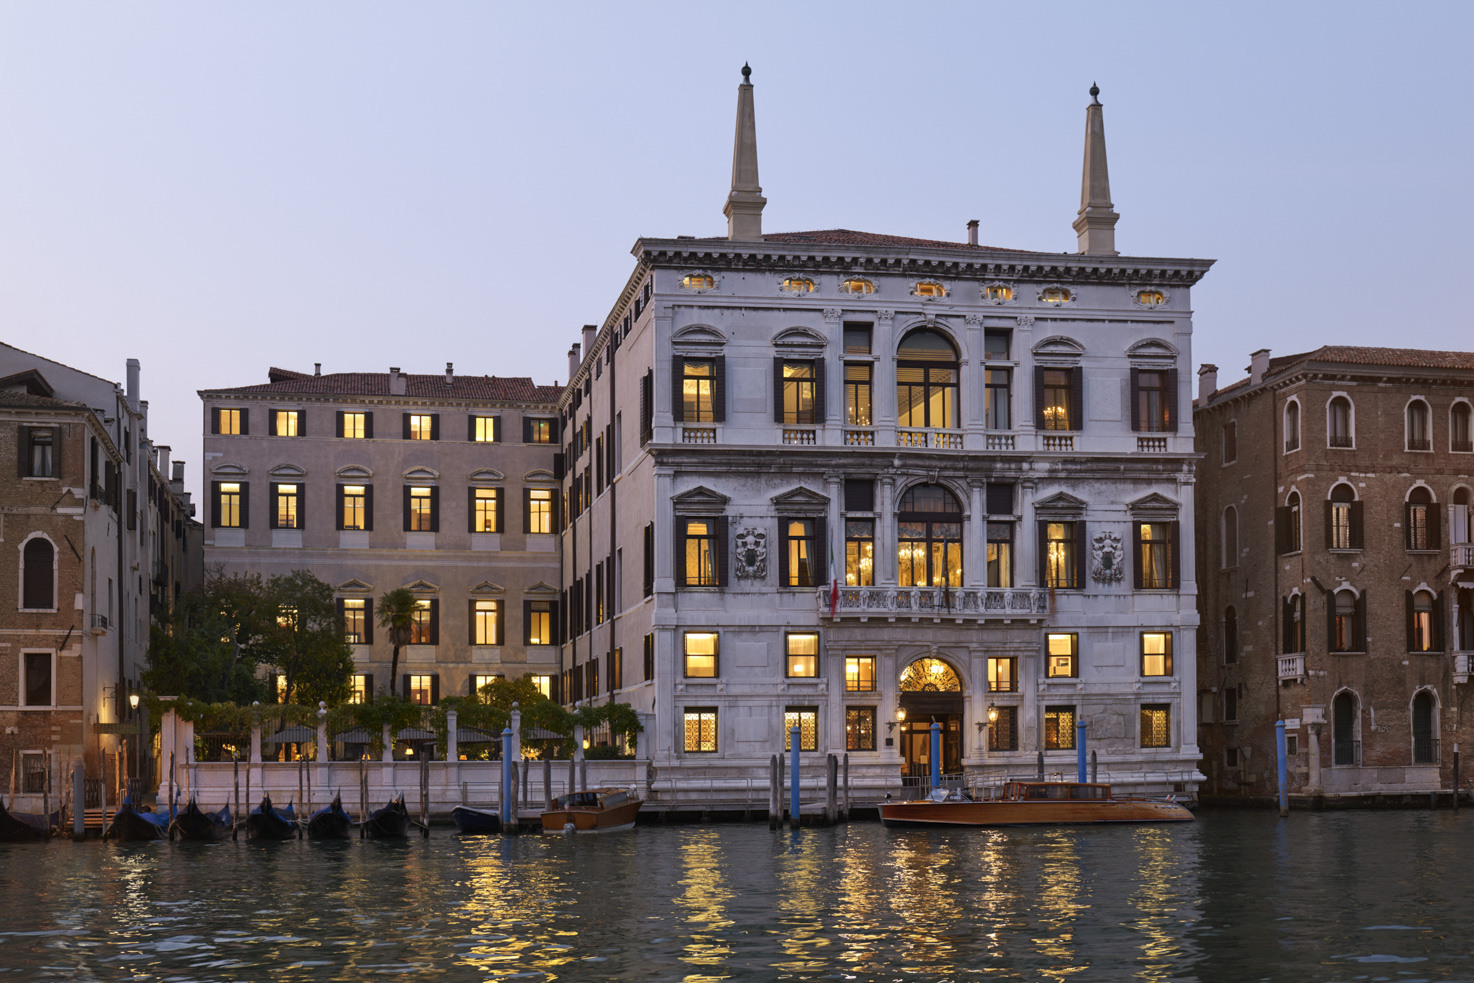 Exterior of Aman Hotel in Venice by night